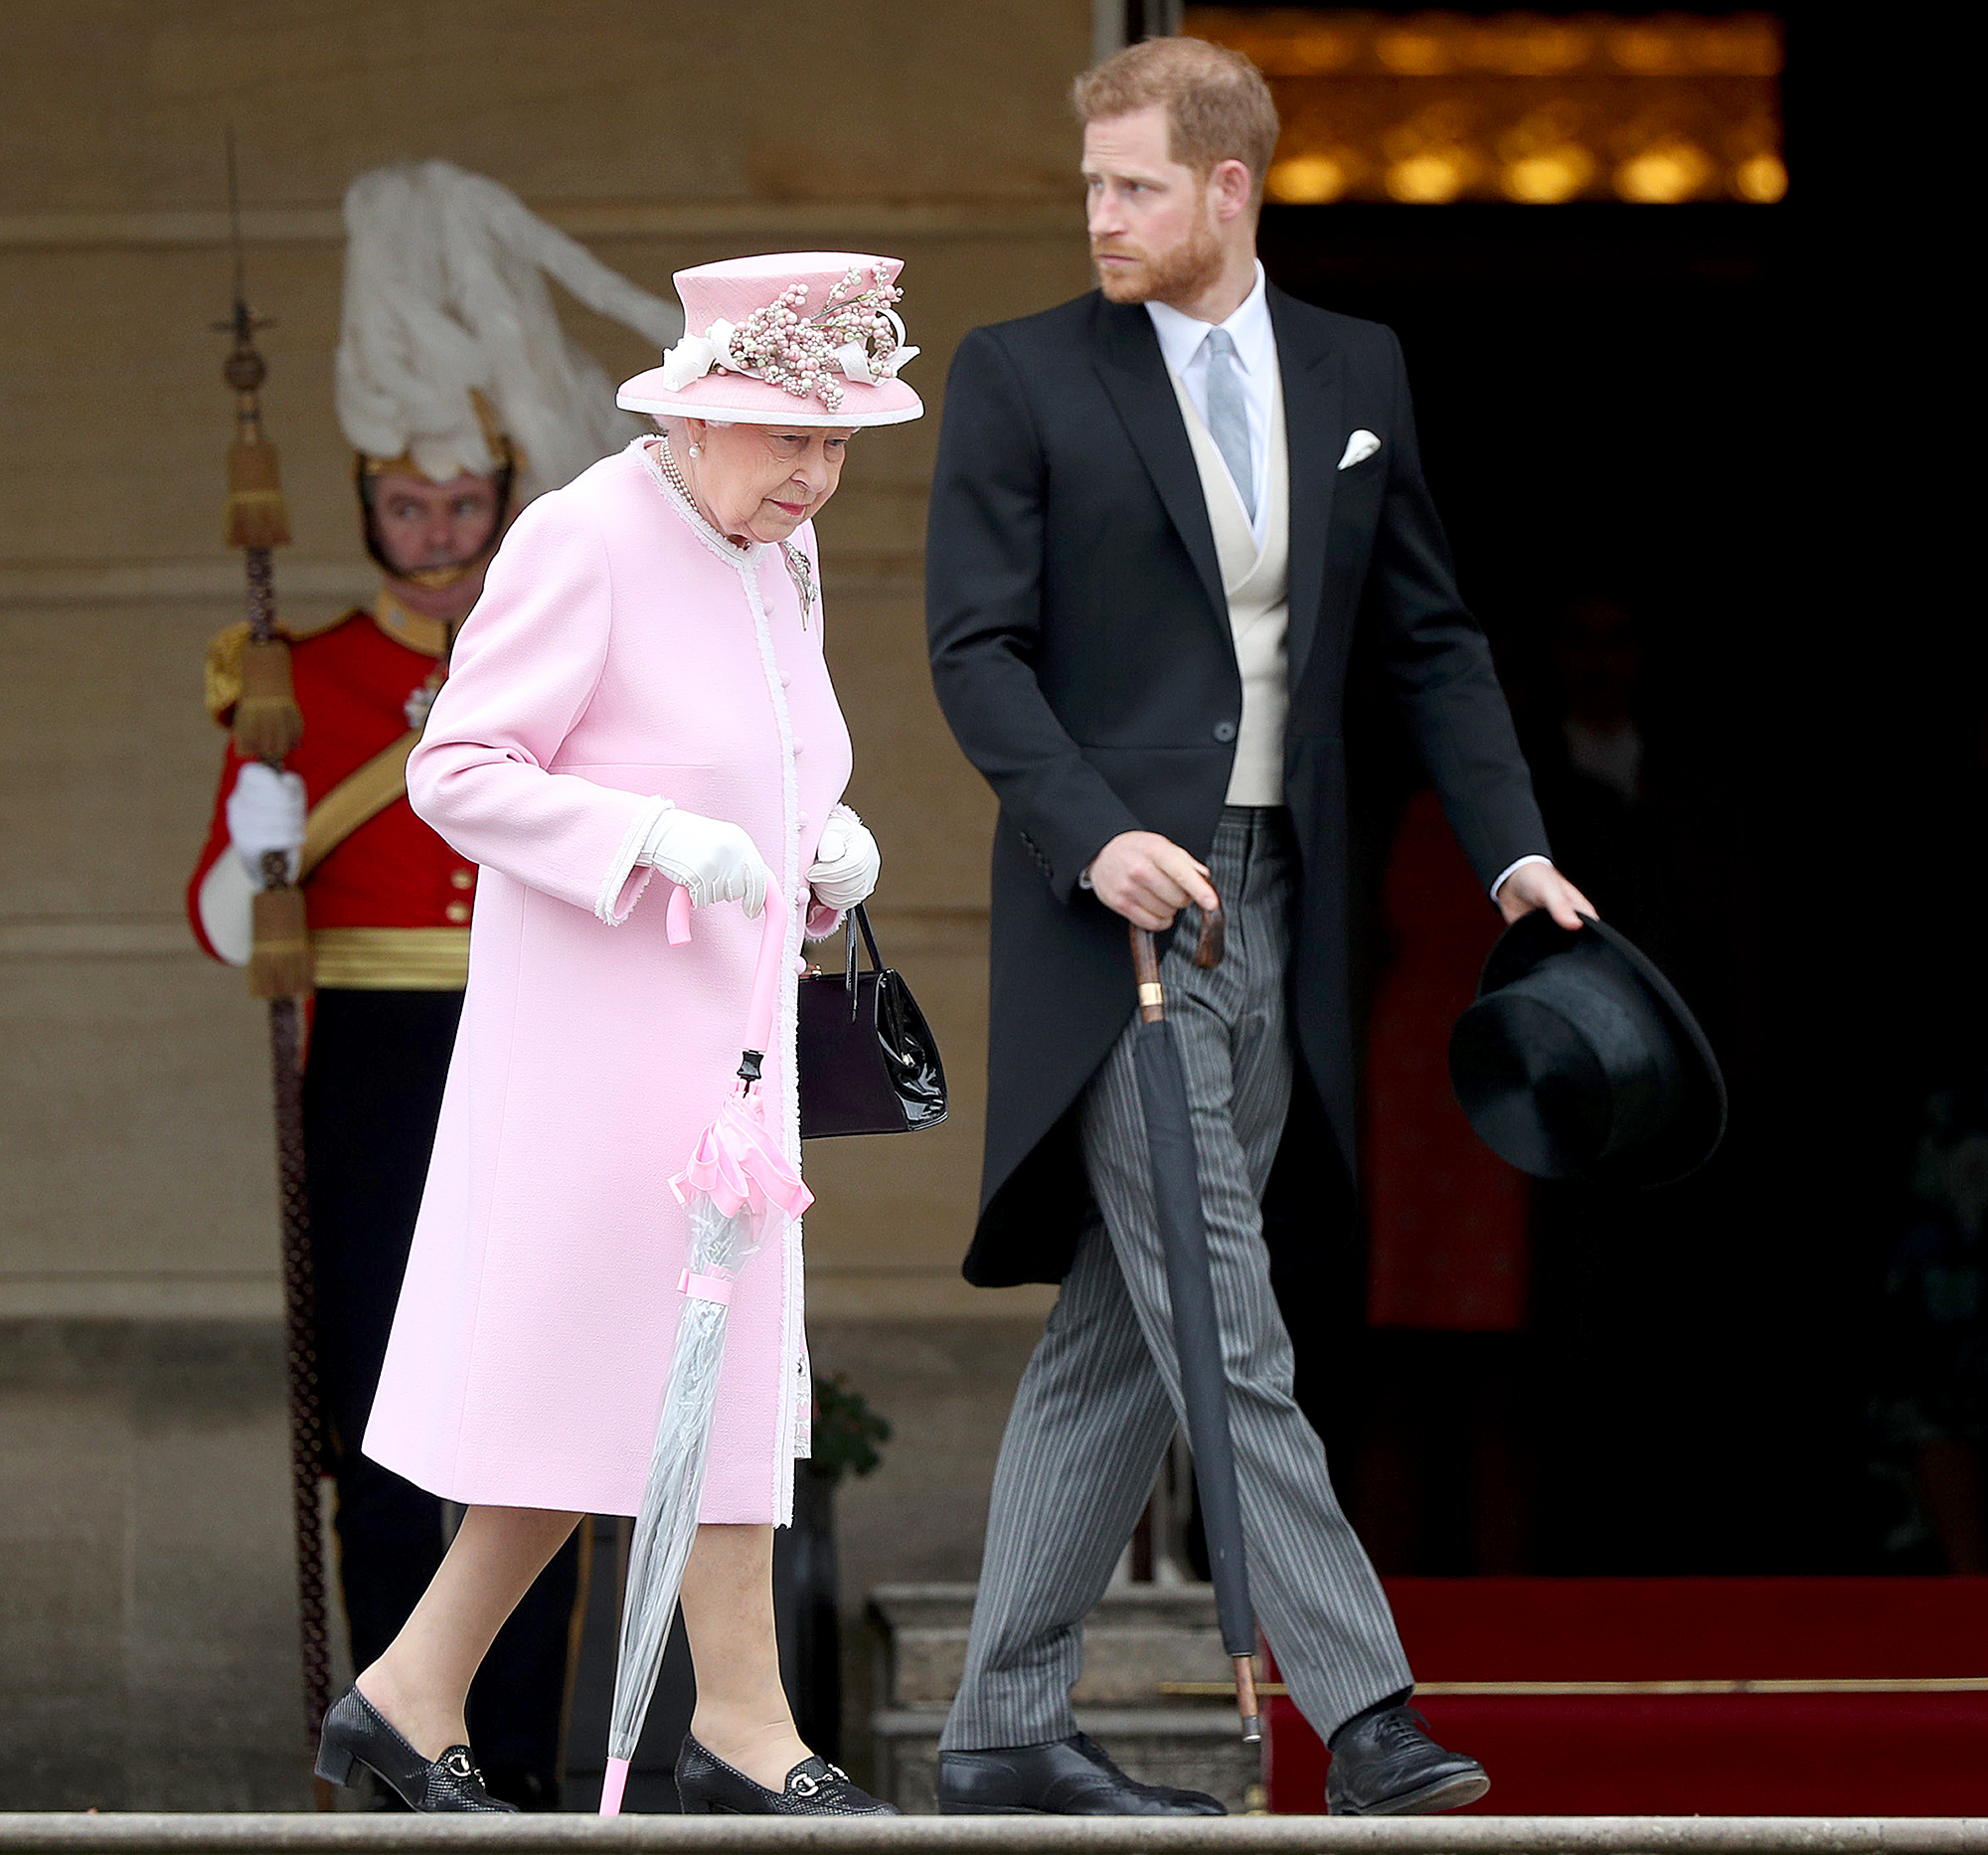 Queen-Elizabeth-II-Is-'Disappointed'-in-Prince-Harry's-Response-to-Trademark-Block